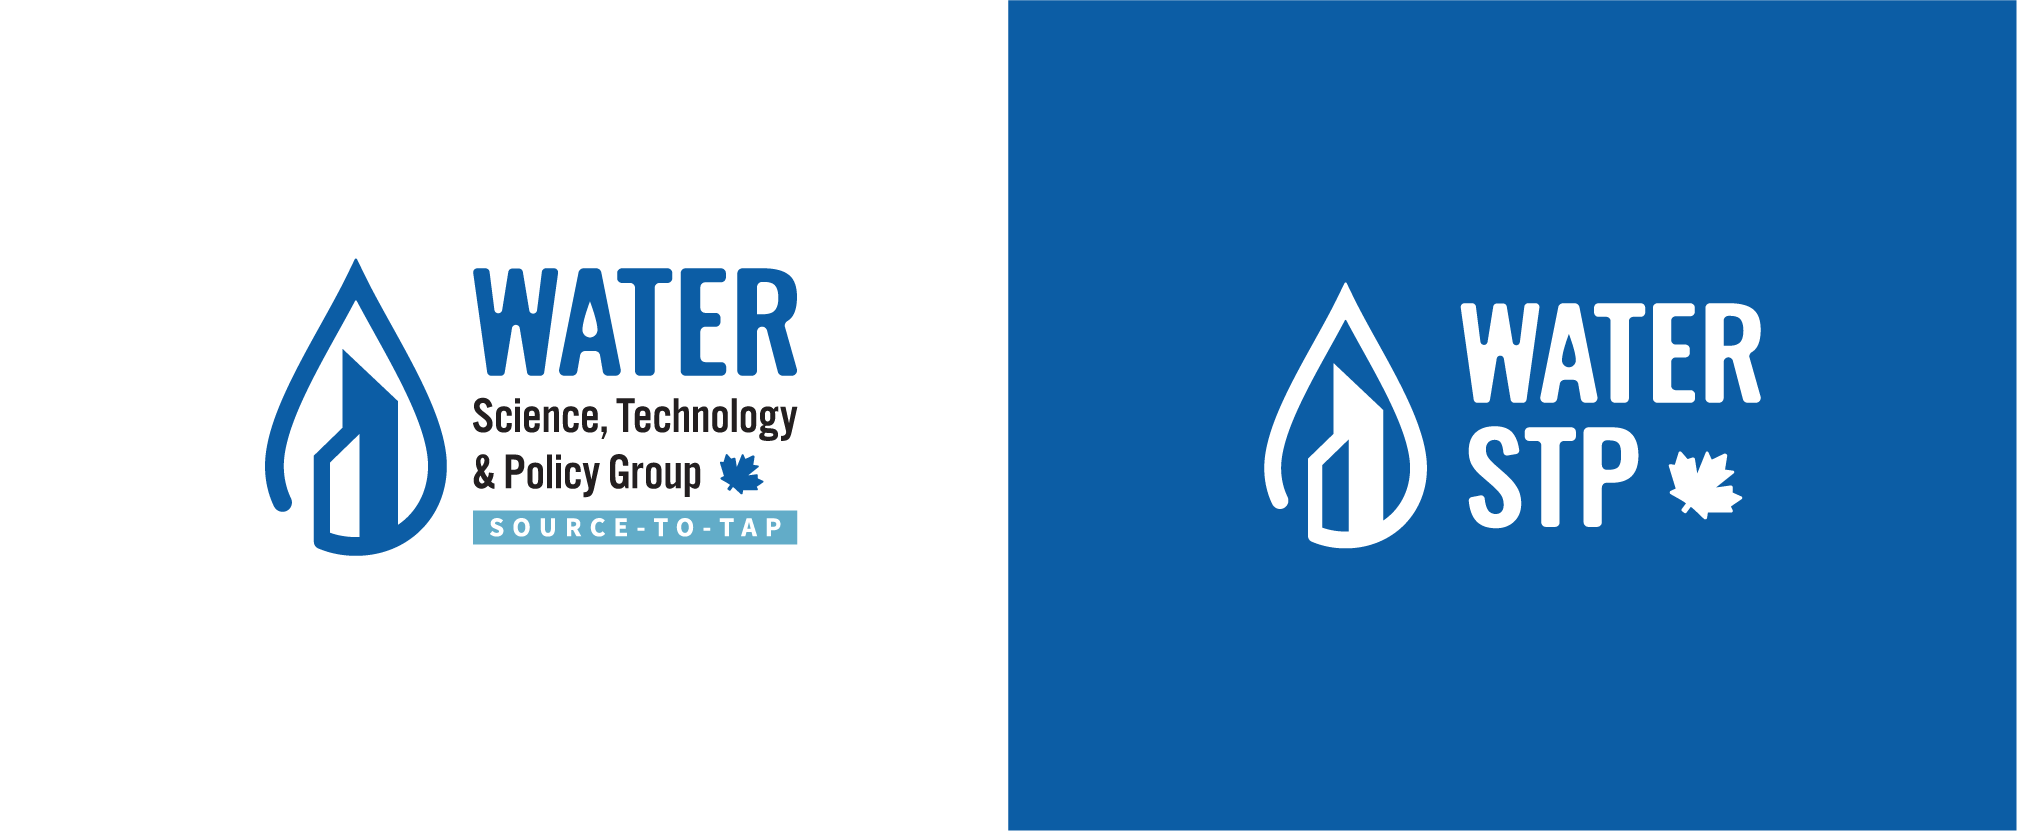 Water technology service for municipalities brand identity logo water drop with buildings tagline